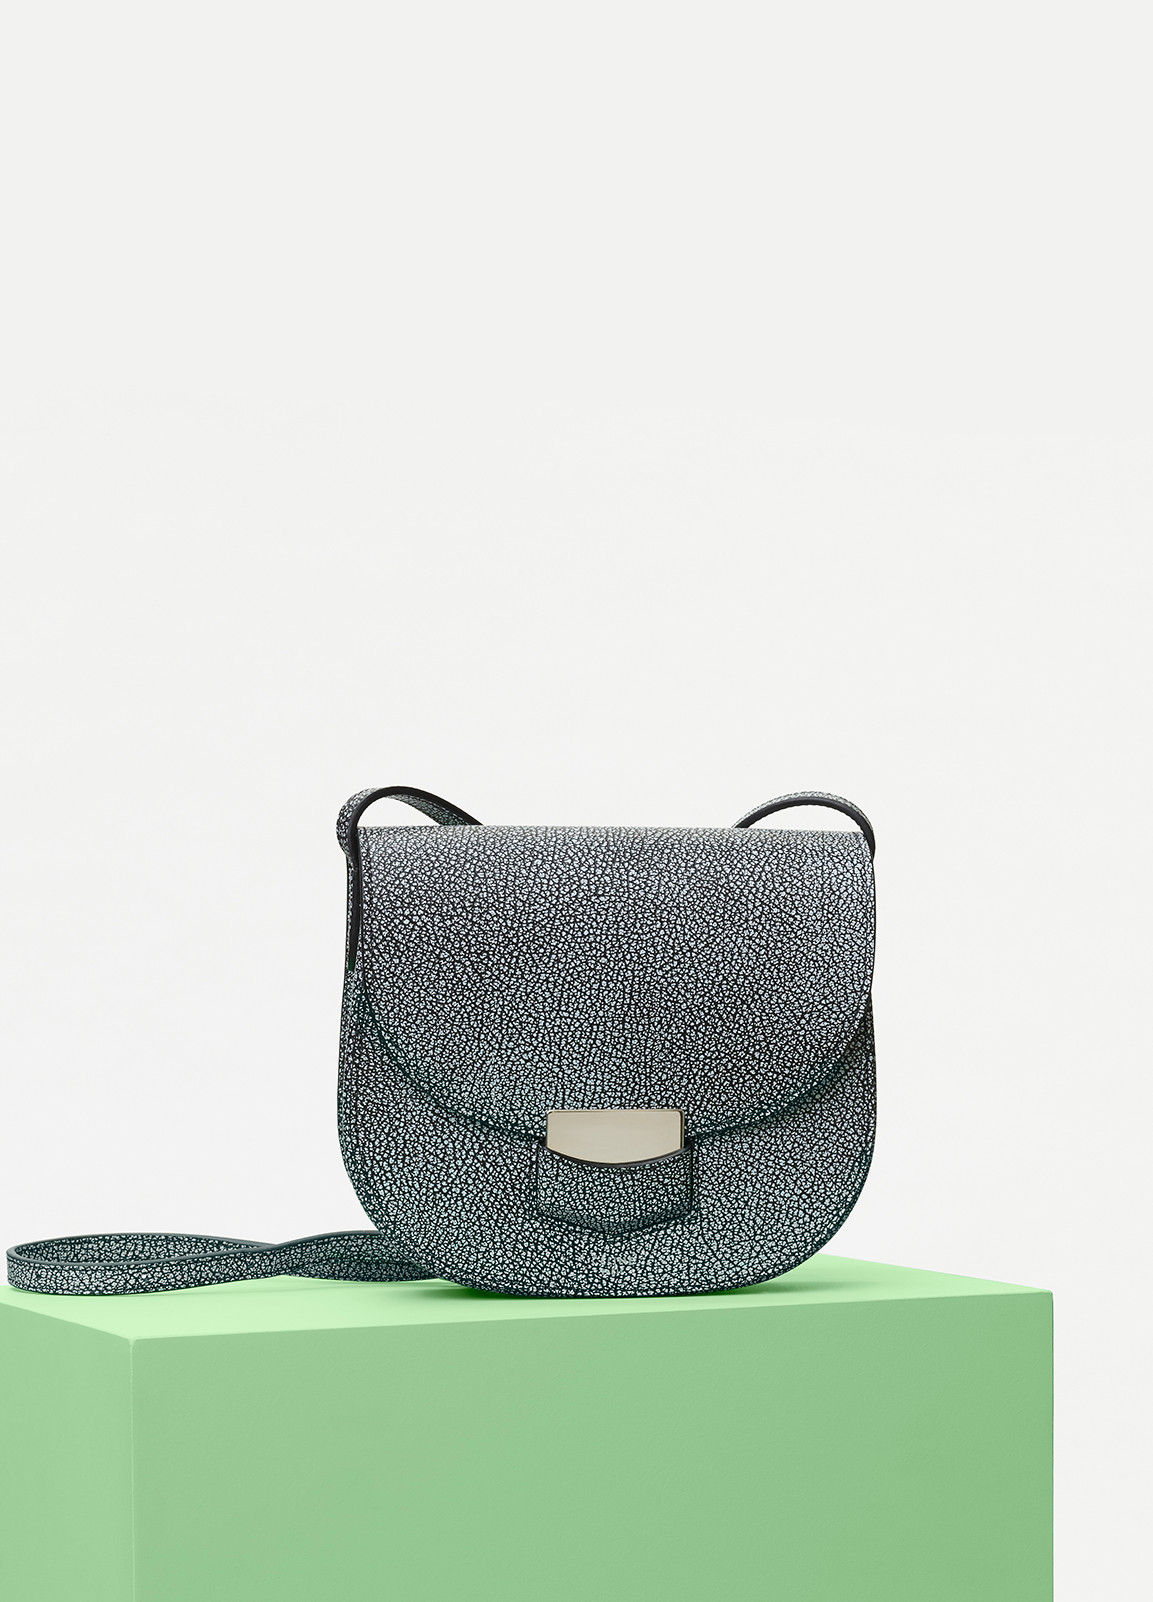 Céline - Small Trotteur Shoulder Bag